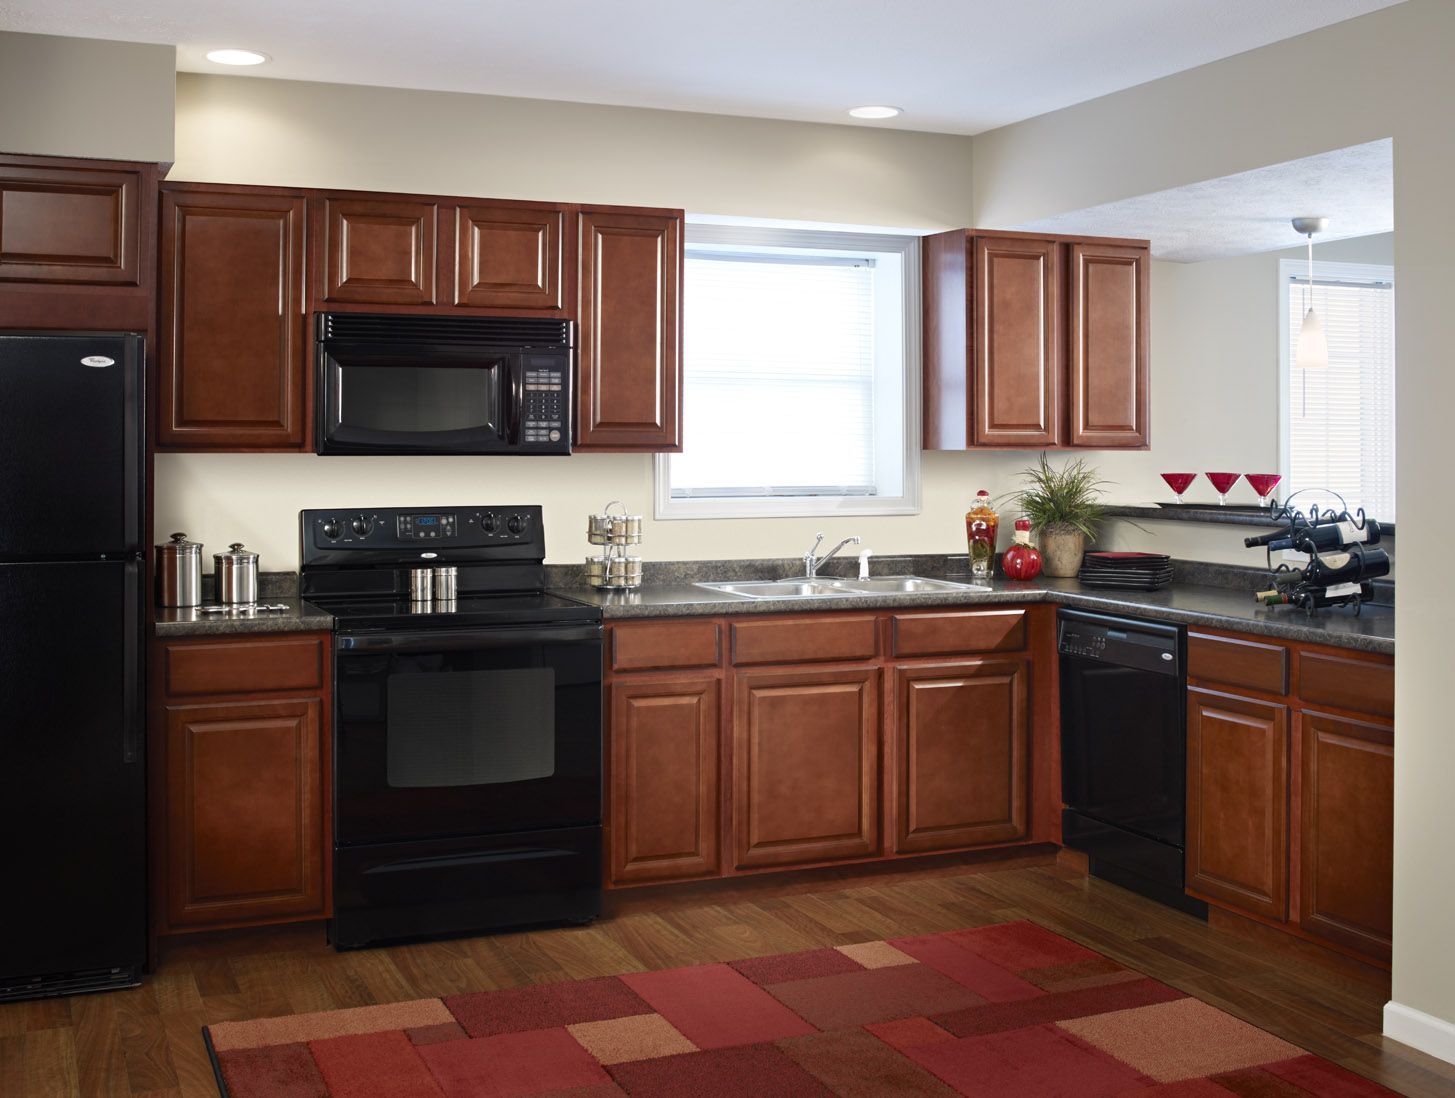 Best Quality Cabinets For Kitchen Bath With Images Online 400 x 300